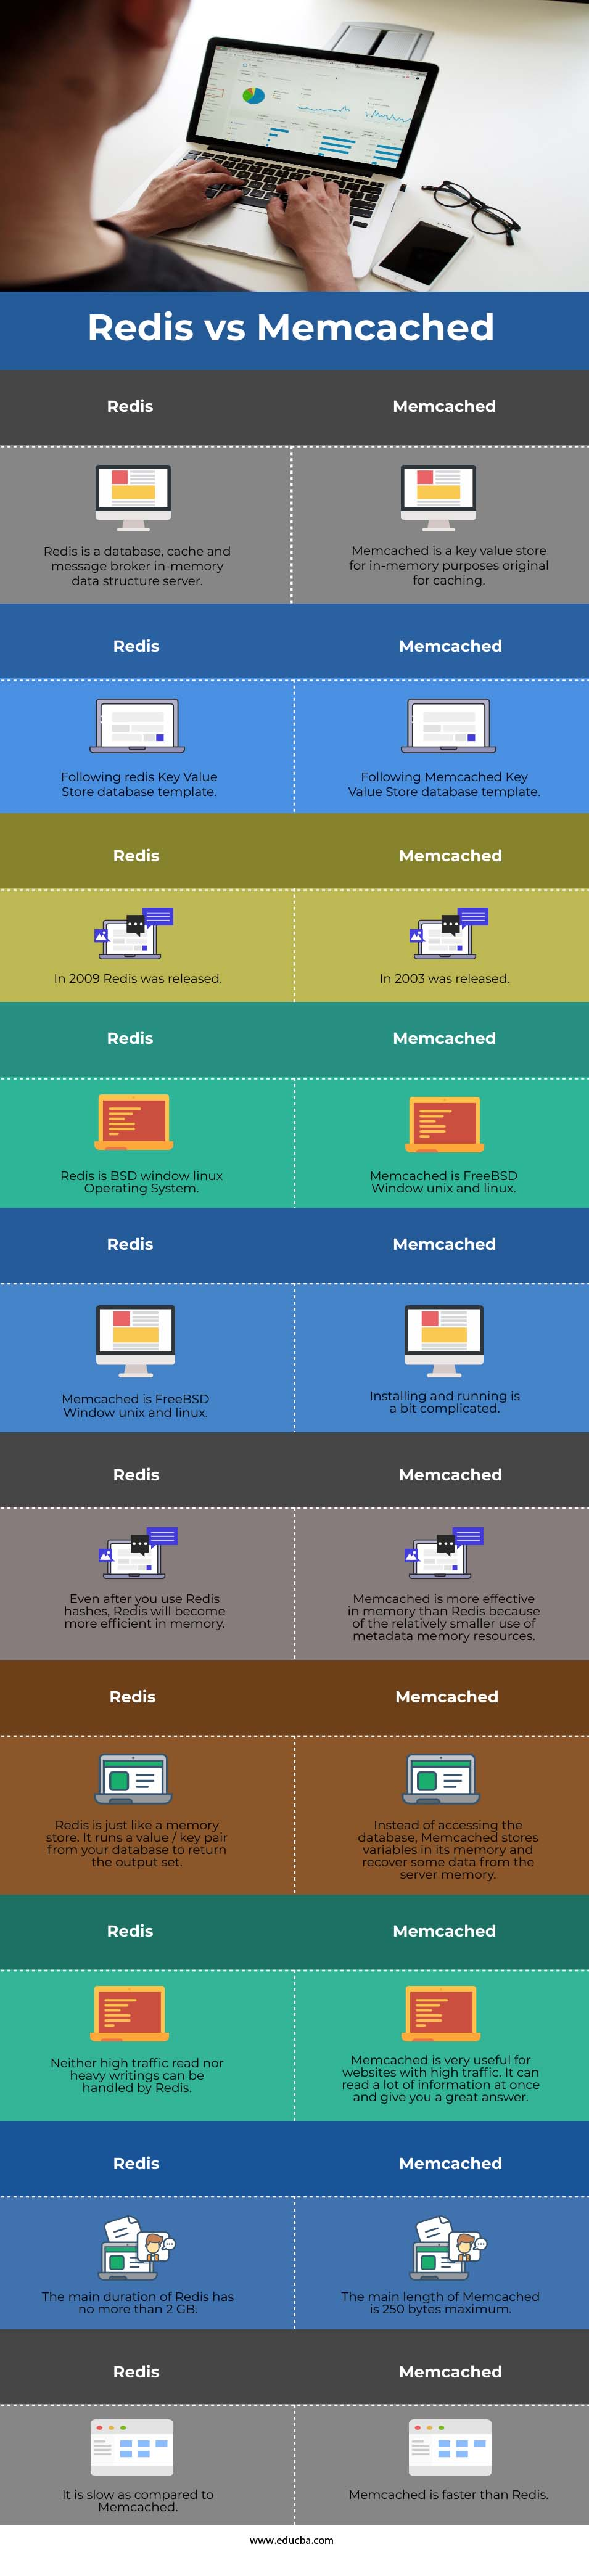 Redis vs Memcached info